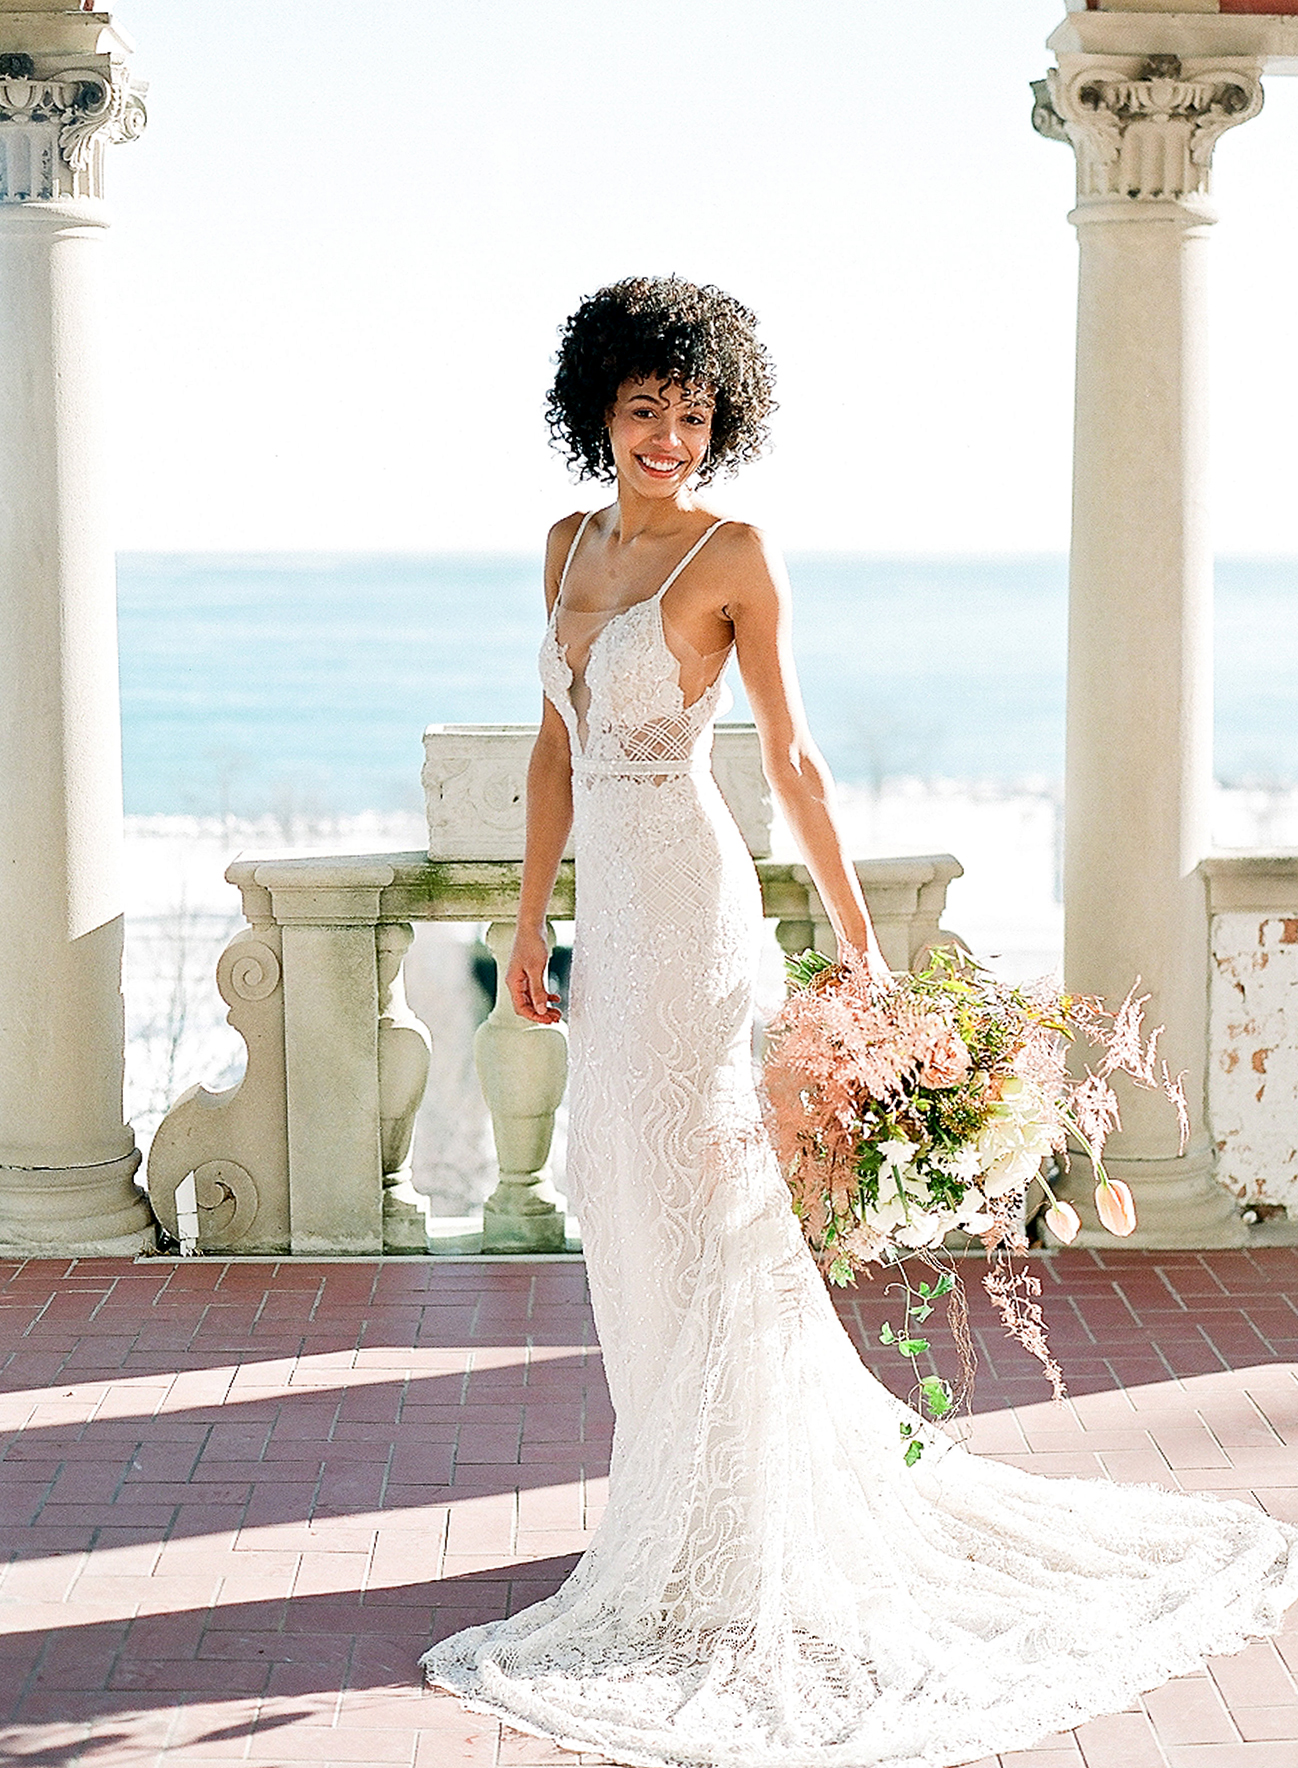 europe style bride in dress with bouquet